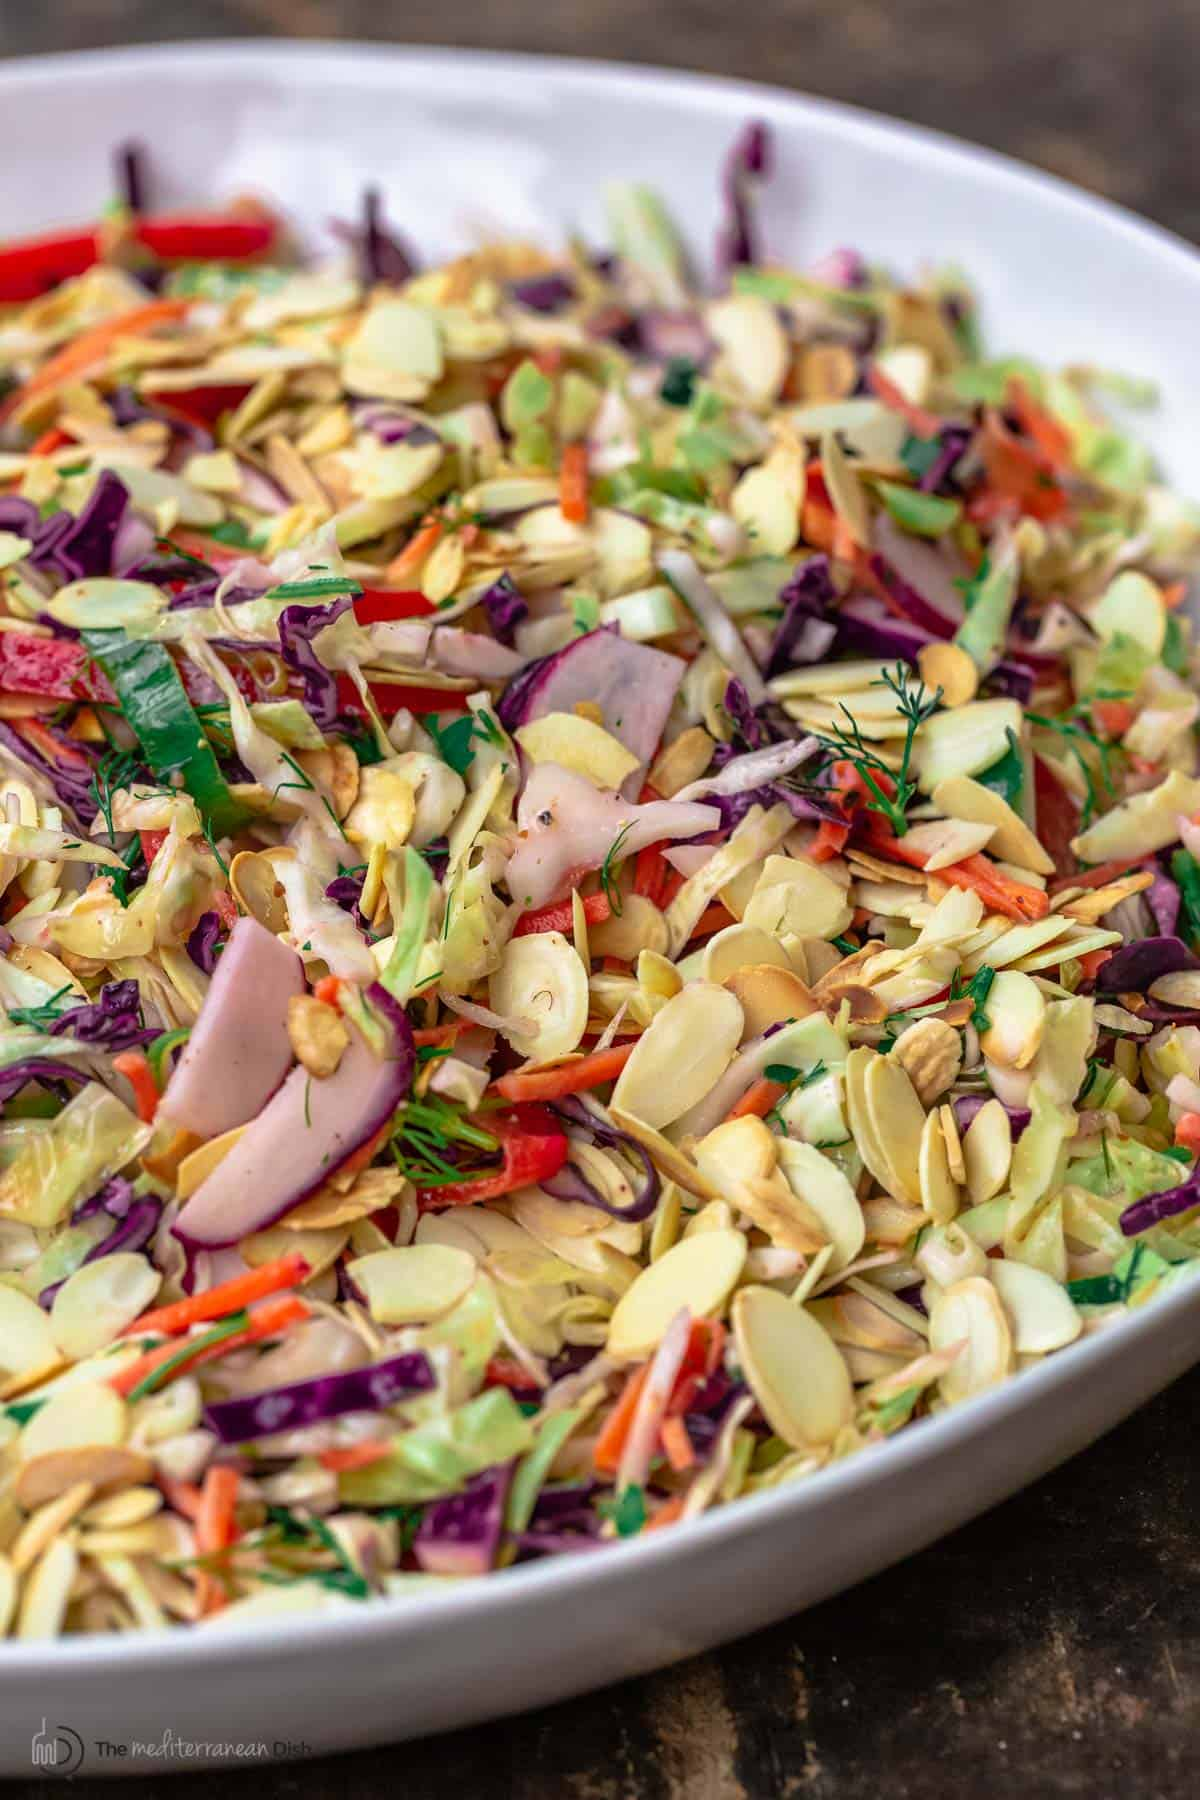 A close-up of a bowl of coleslaw without mayo